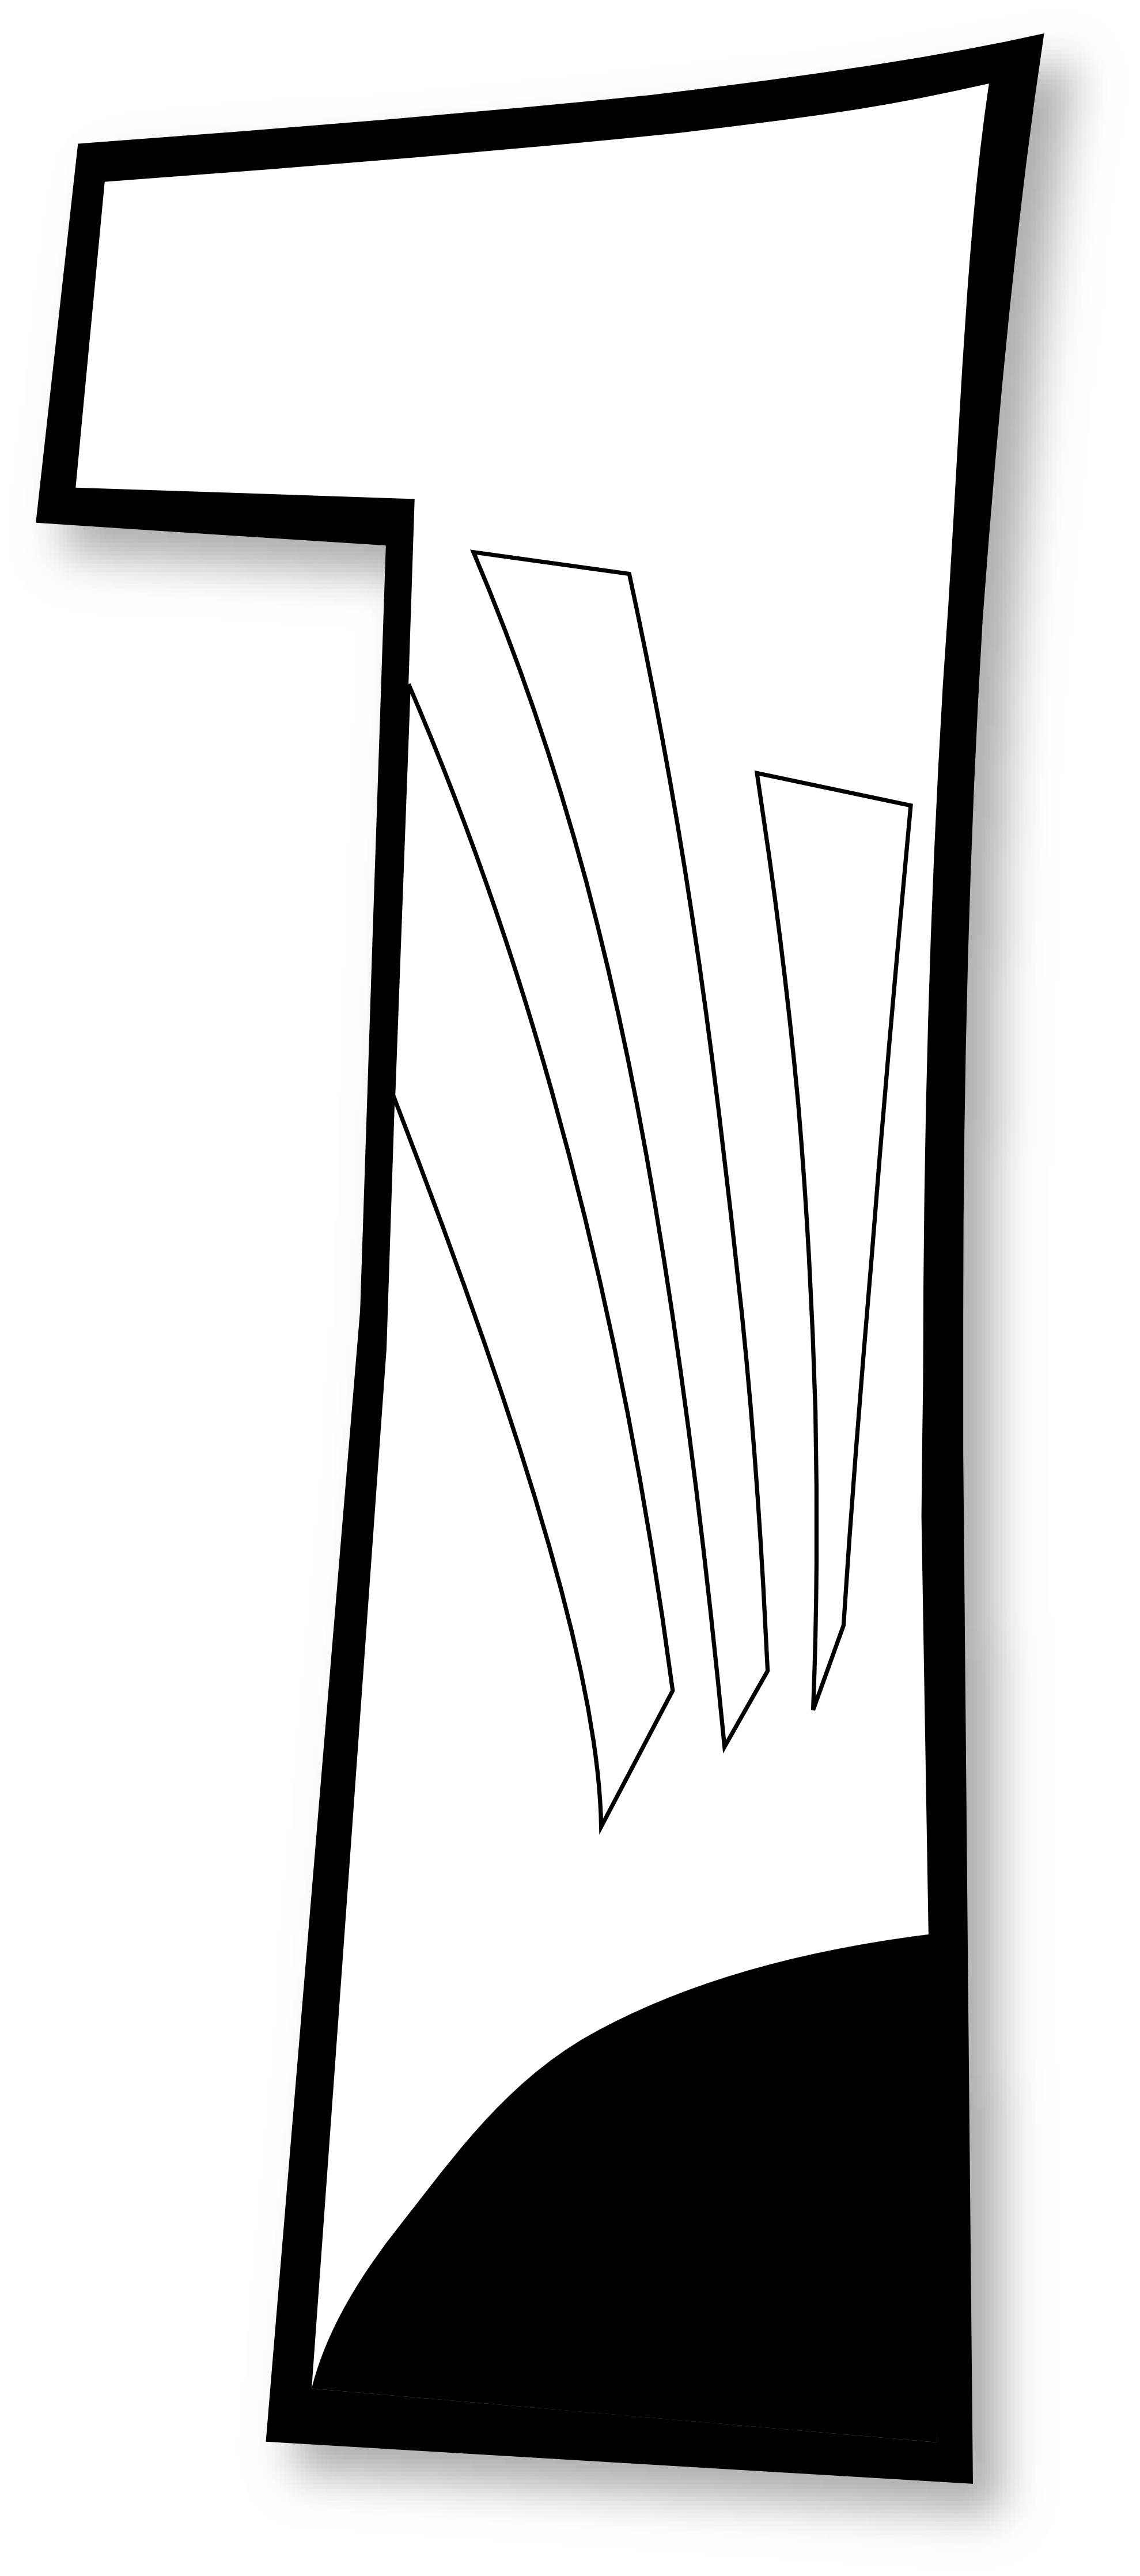 coloring sheet 7 days of creation coloring pages free 7 days of creation drawing at getdrawings free download coloring days pages creation free coloring 7 of sheet